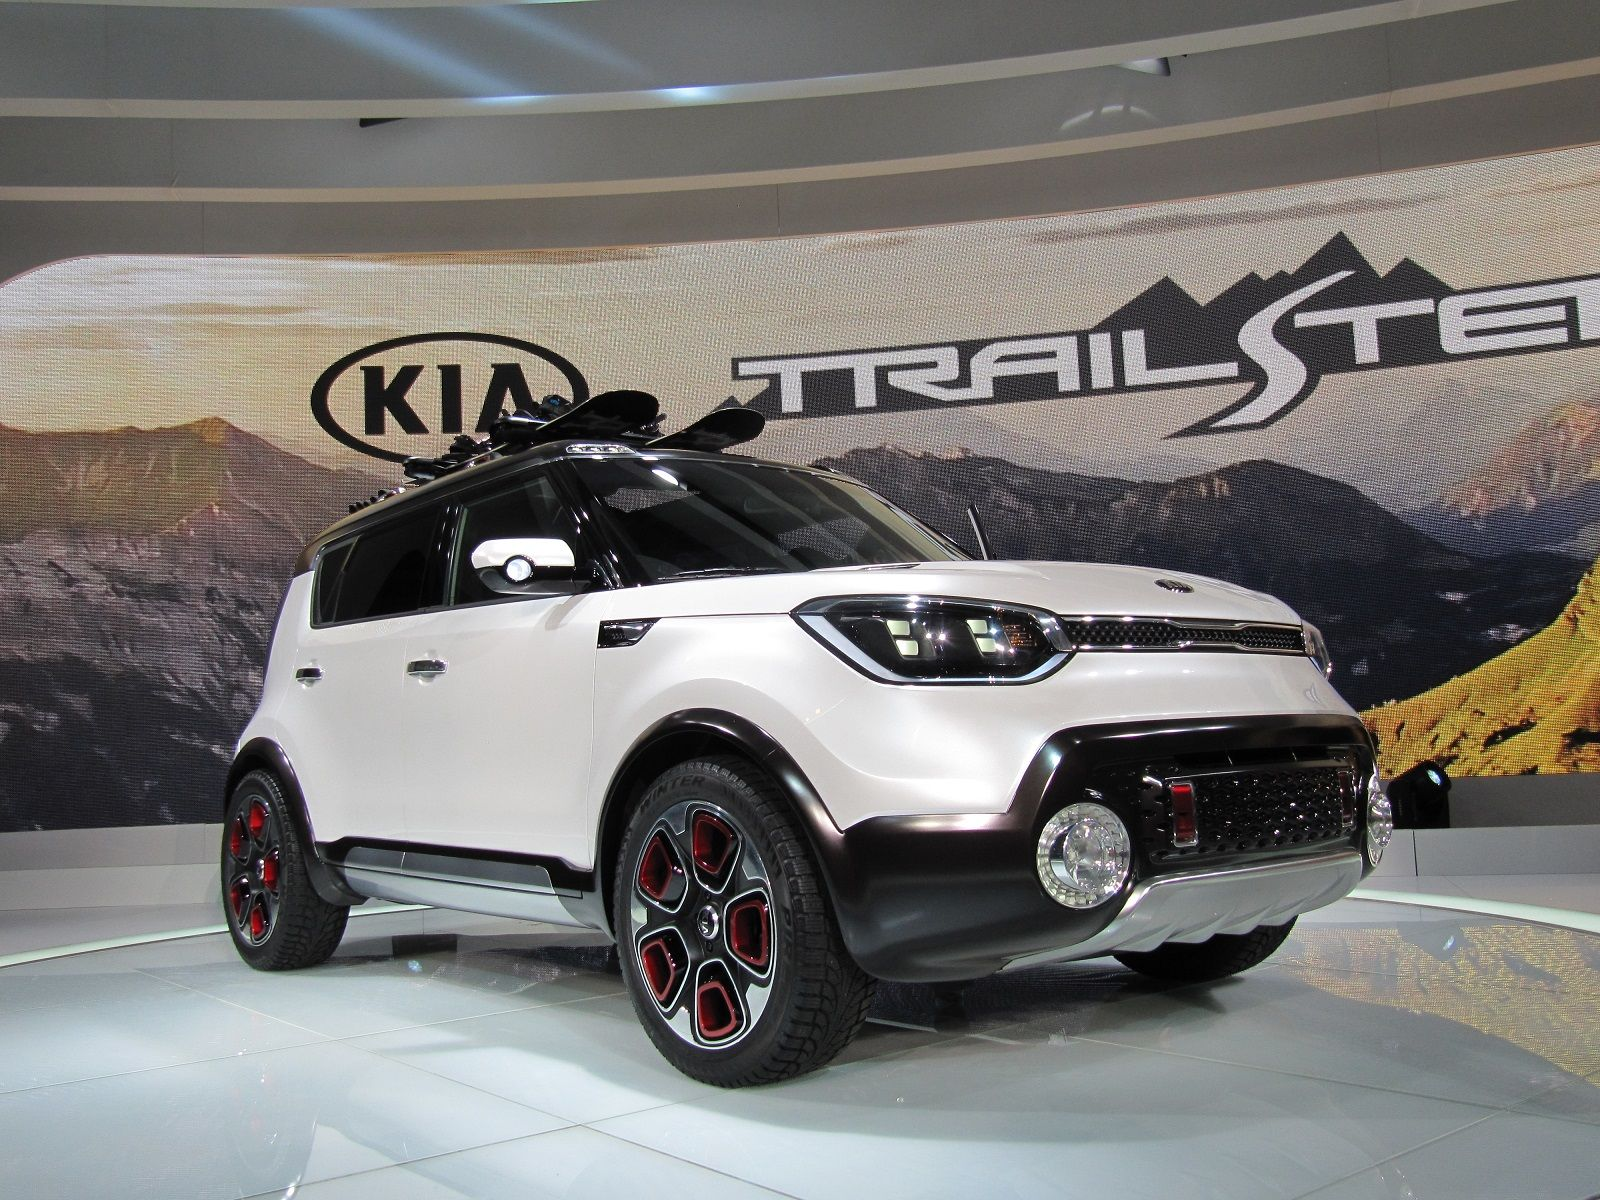 Kia Soul Based Trail Ster Concept Features Electric Awd Live Photos From Chicago Auto Show Kia Soul Kia Awd